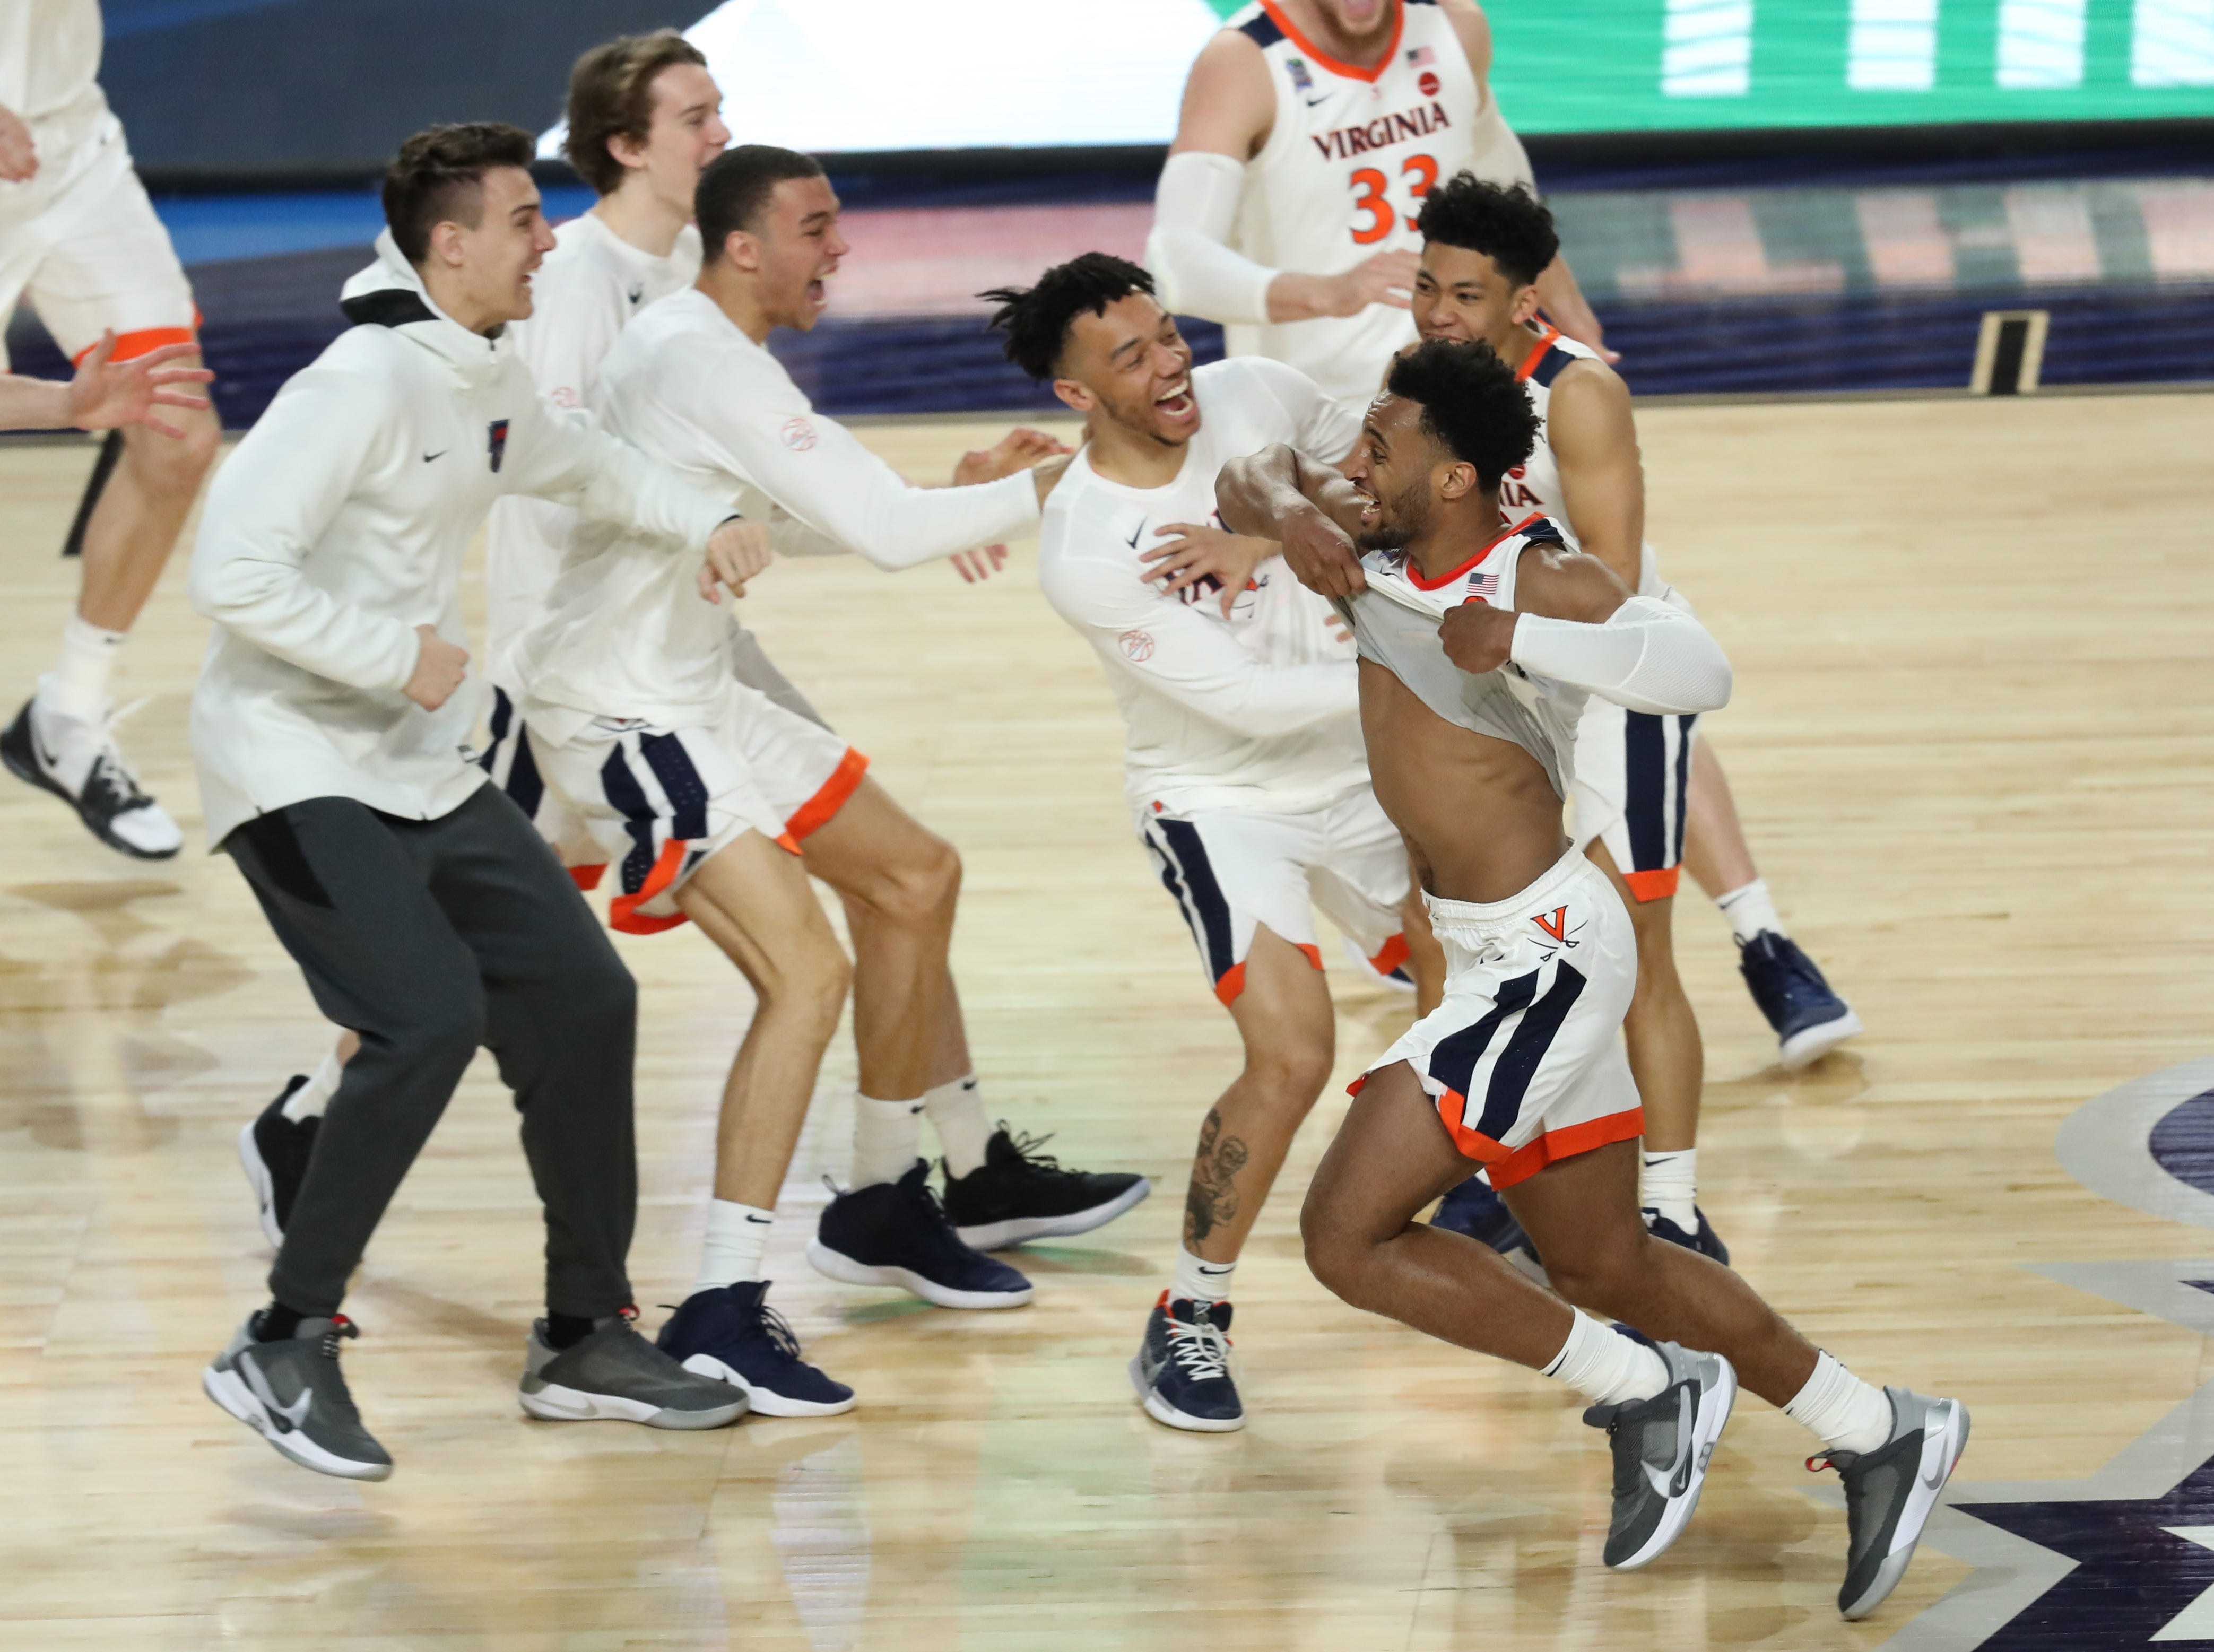 Apr 8, 2019; Minneapolis, MN, USA; Virginia Cavaliers guard Braxton Key (2) and teammates celebrate after defeating the Texas Tech Red Raiders in the championship game of the 2019 men's Final Four at US Bank Stadium. Mandatory Credit: Brace Hemmelgarn-USA TODAY Sports